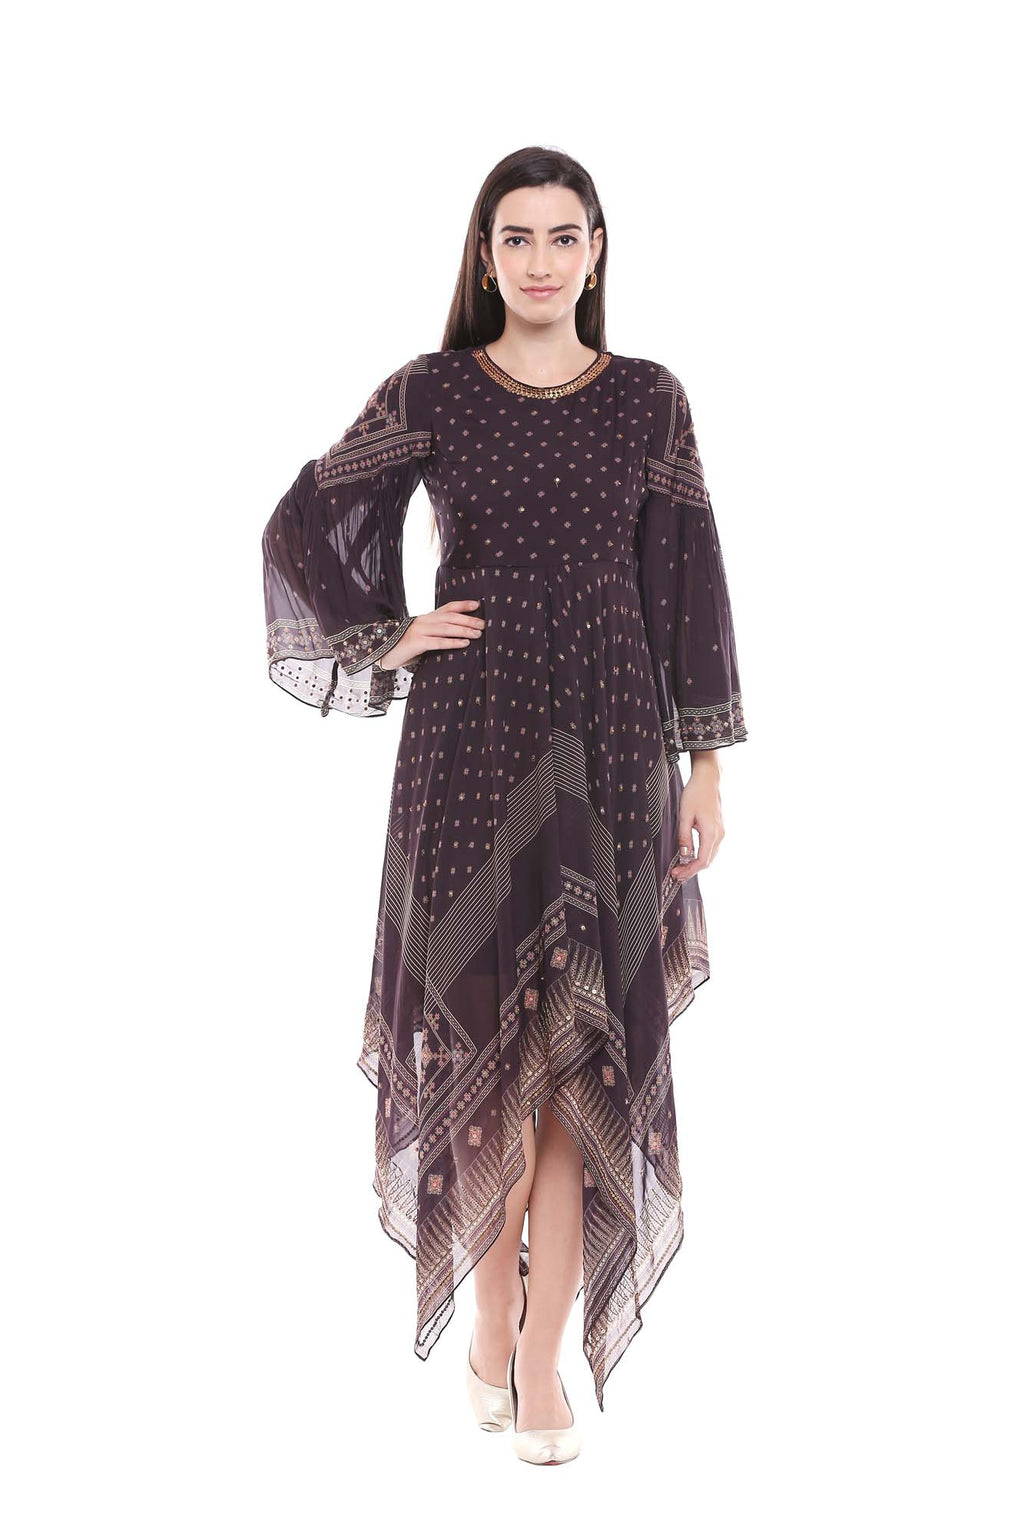 Printed Black and Beige Handkerchief Style Dress - Riviera Closet